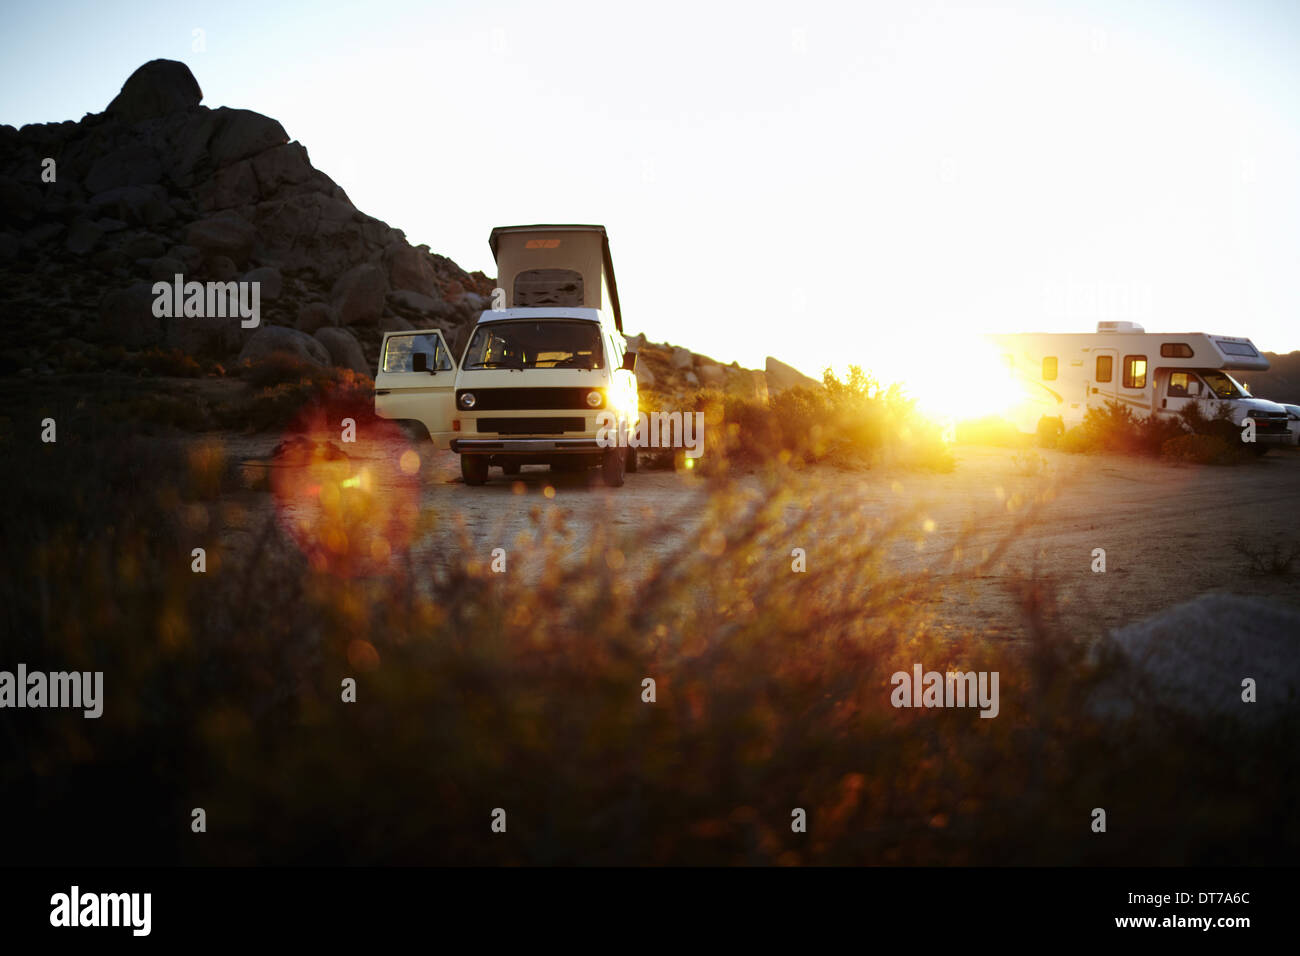 d1c8d4e645 A camper van a classic design and an iconic travelling vehicle in Yosemite  national park at